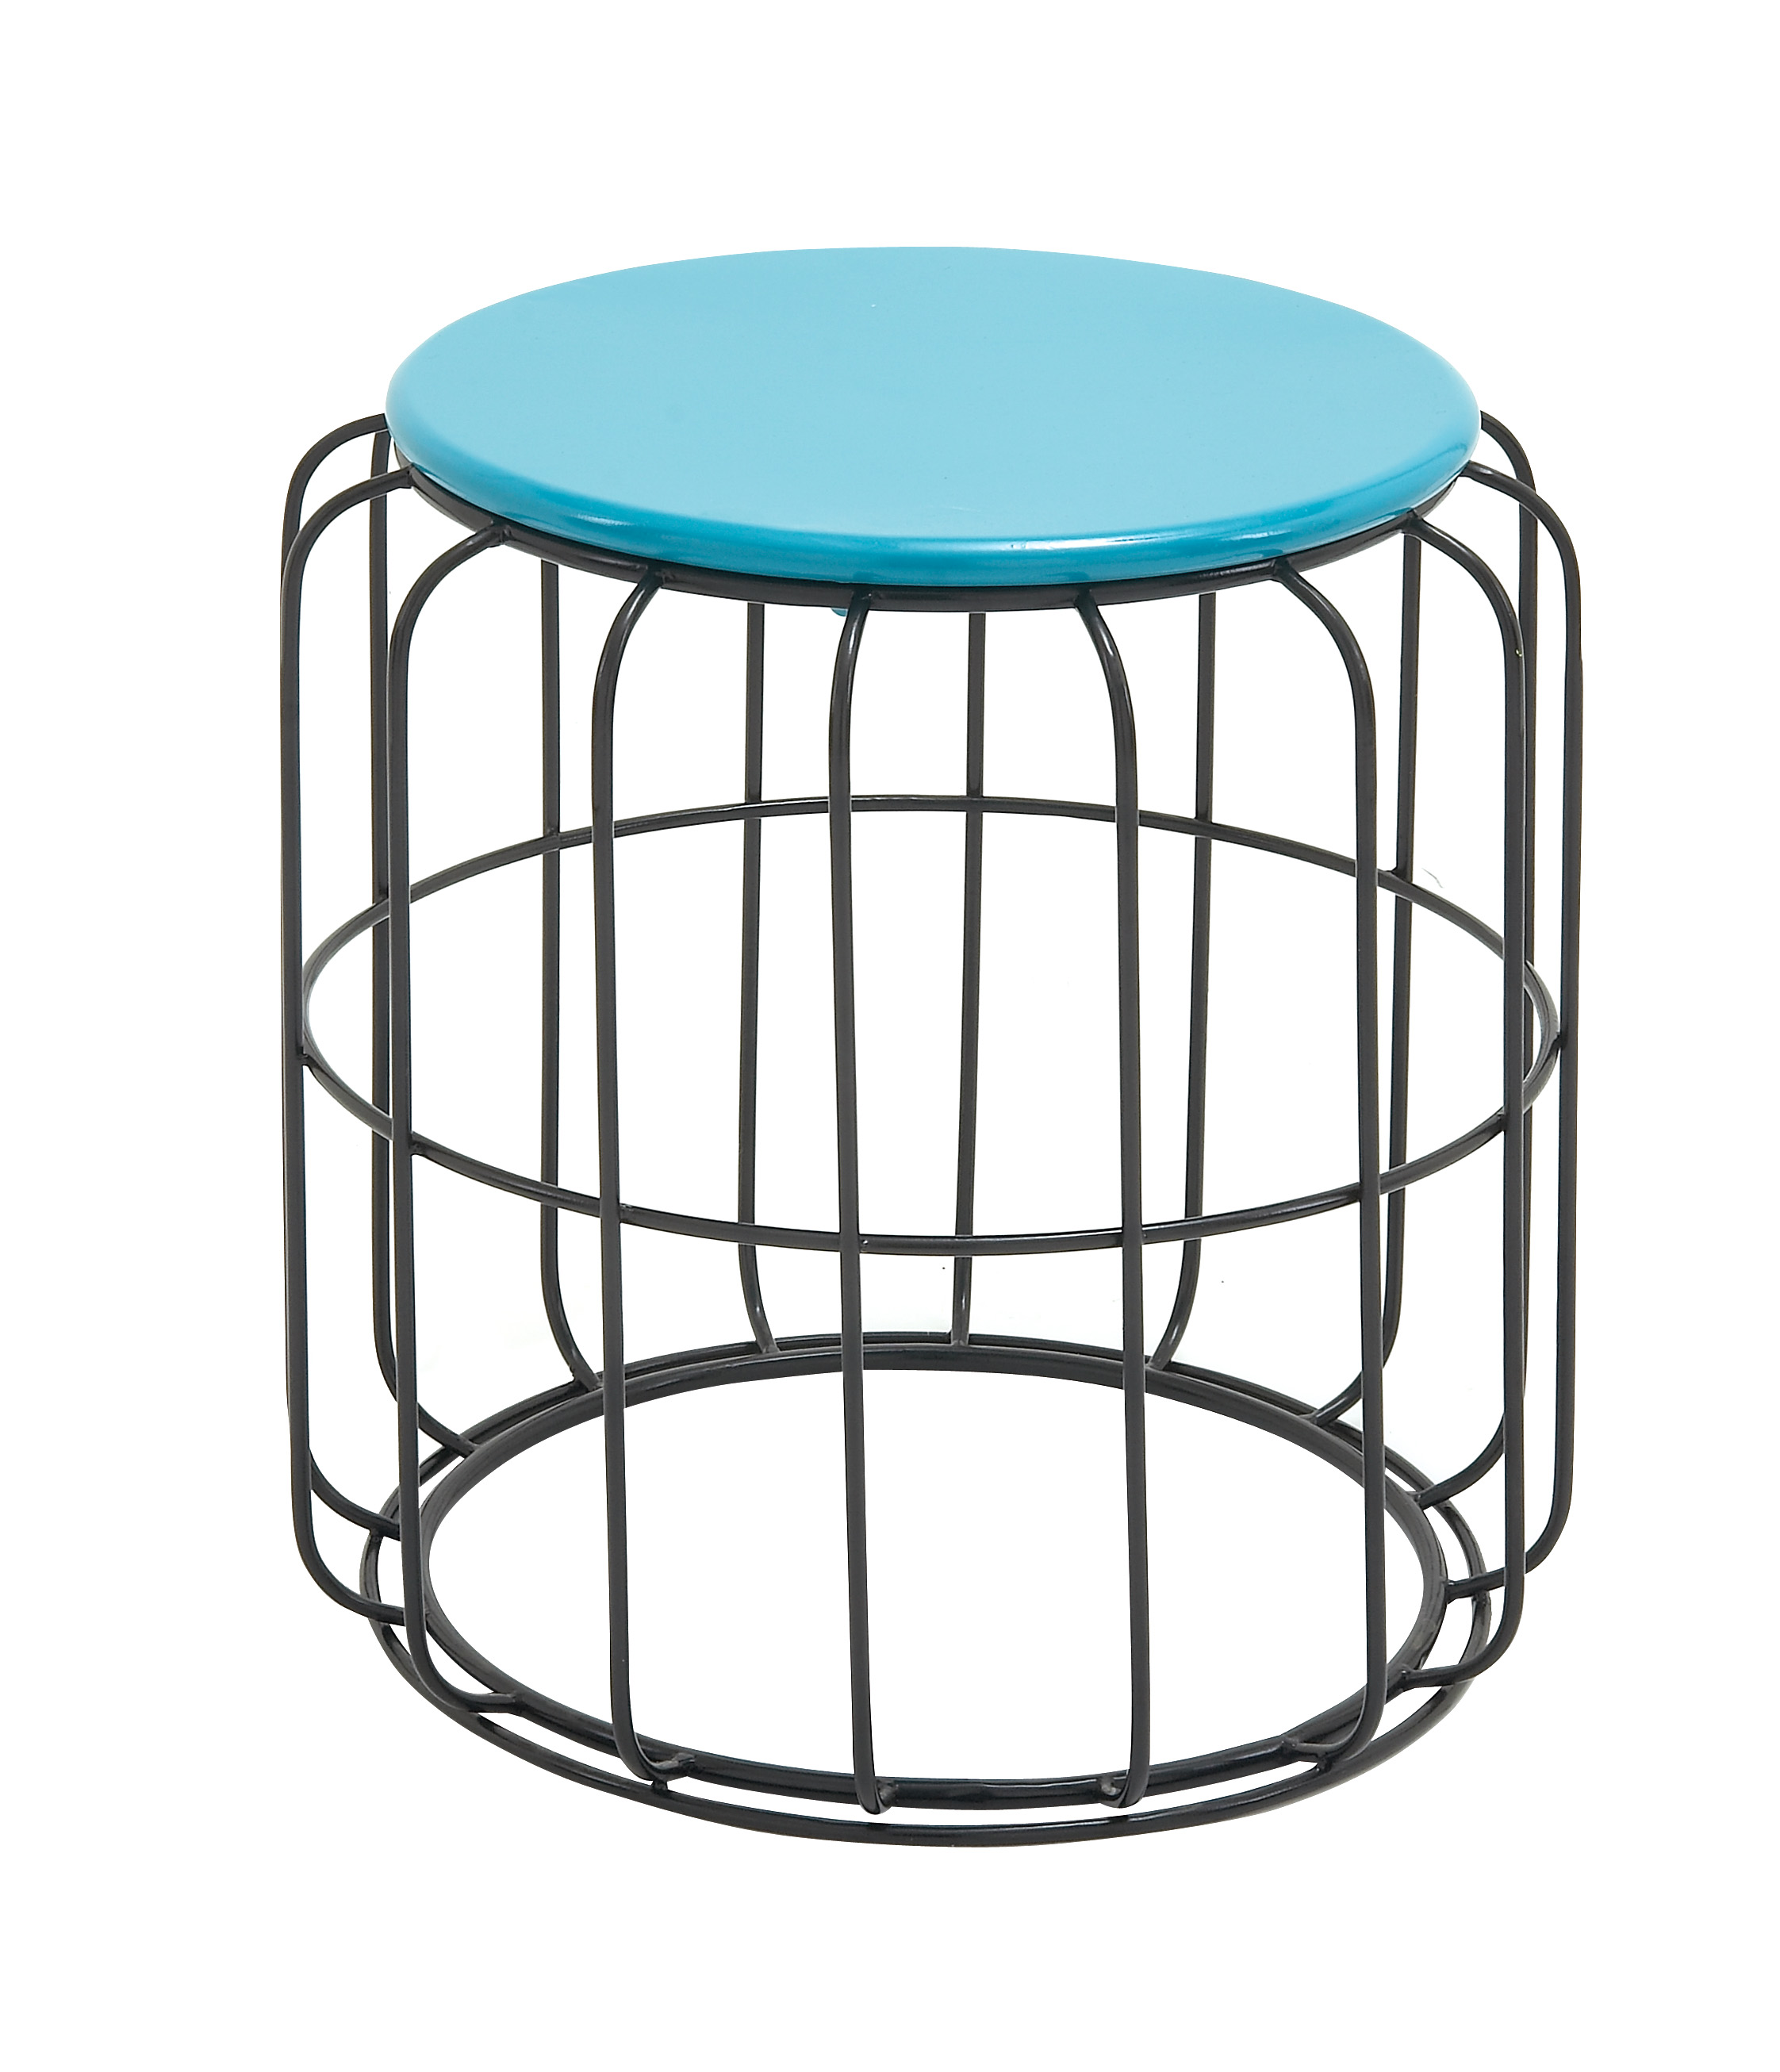 Classy Metal Accent Table In Blue And Black Color by Benzara